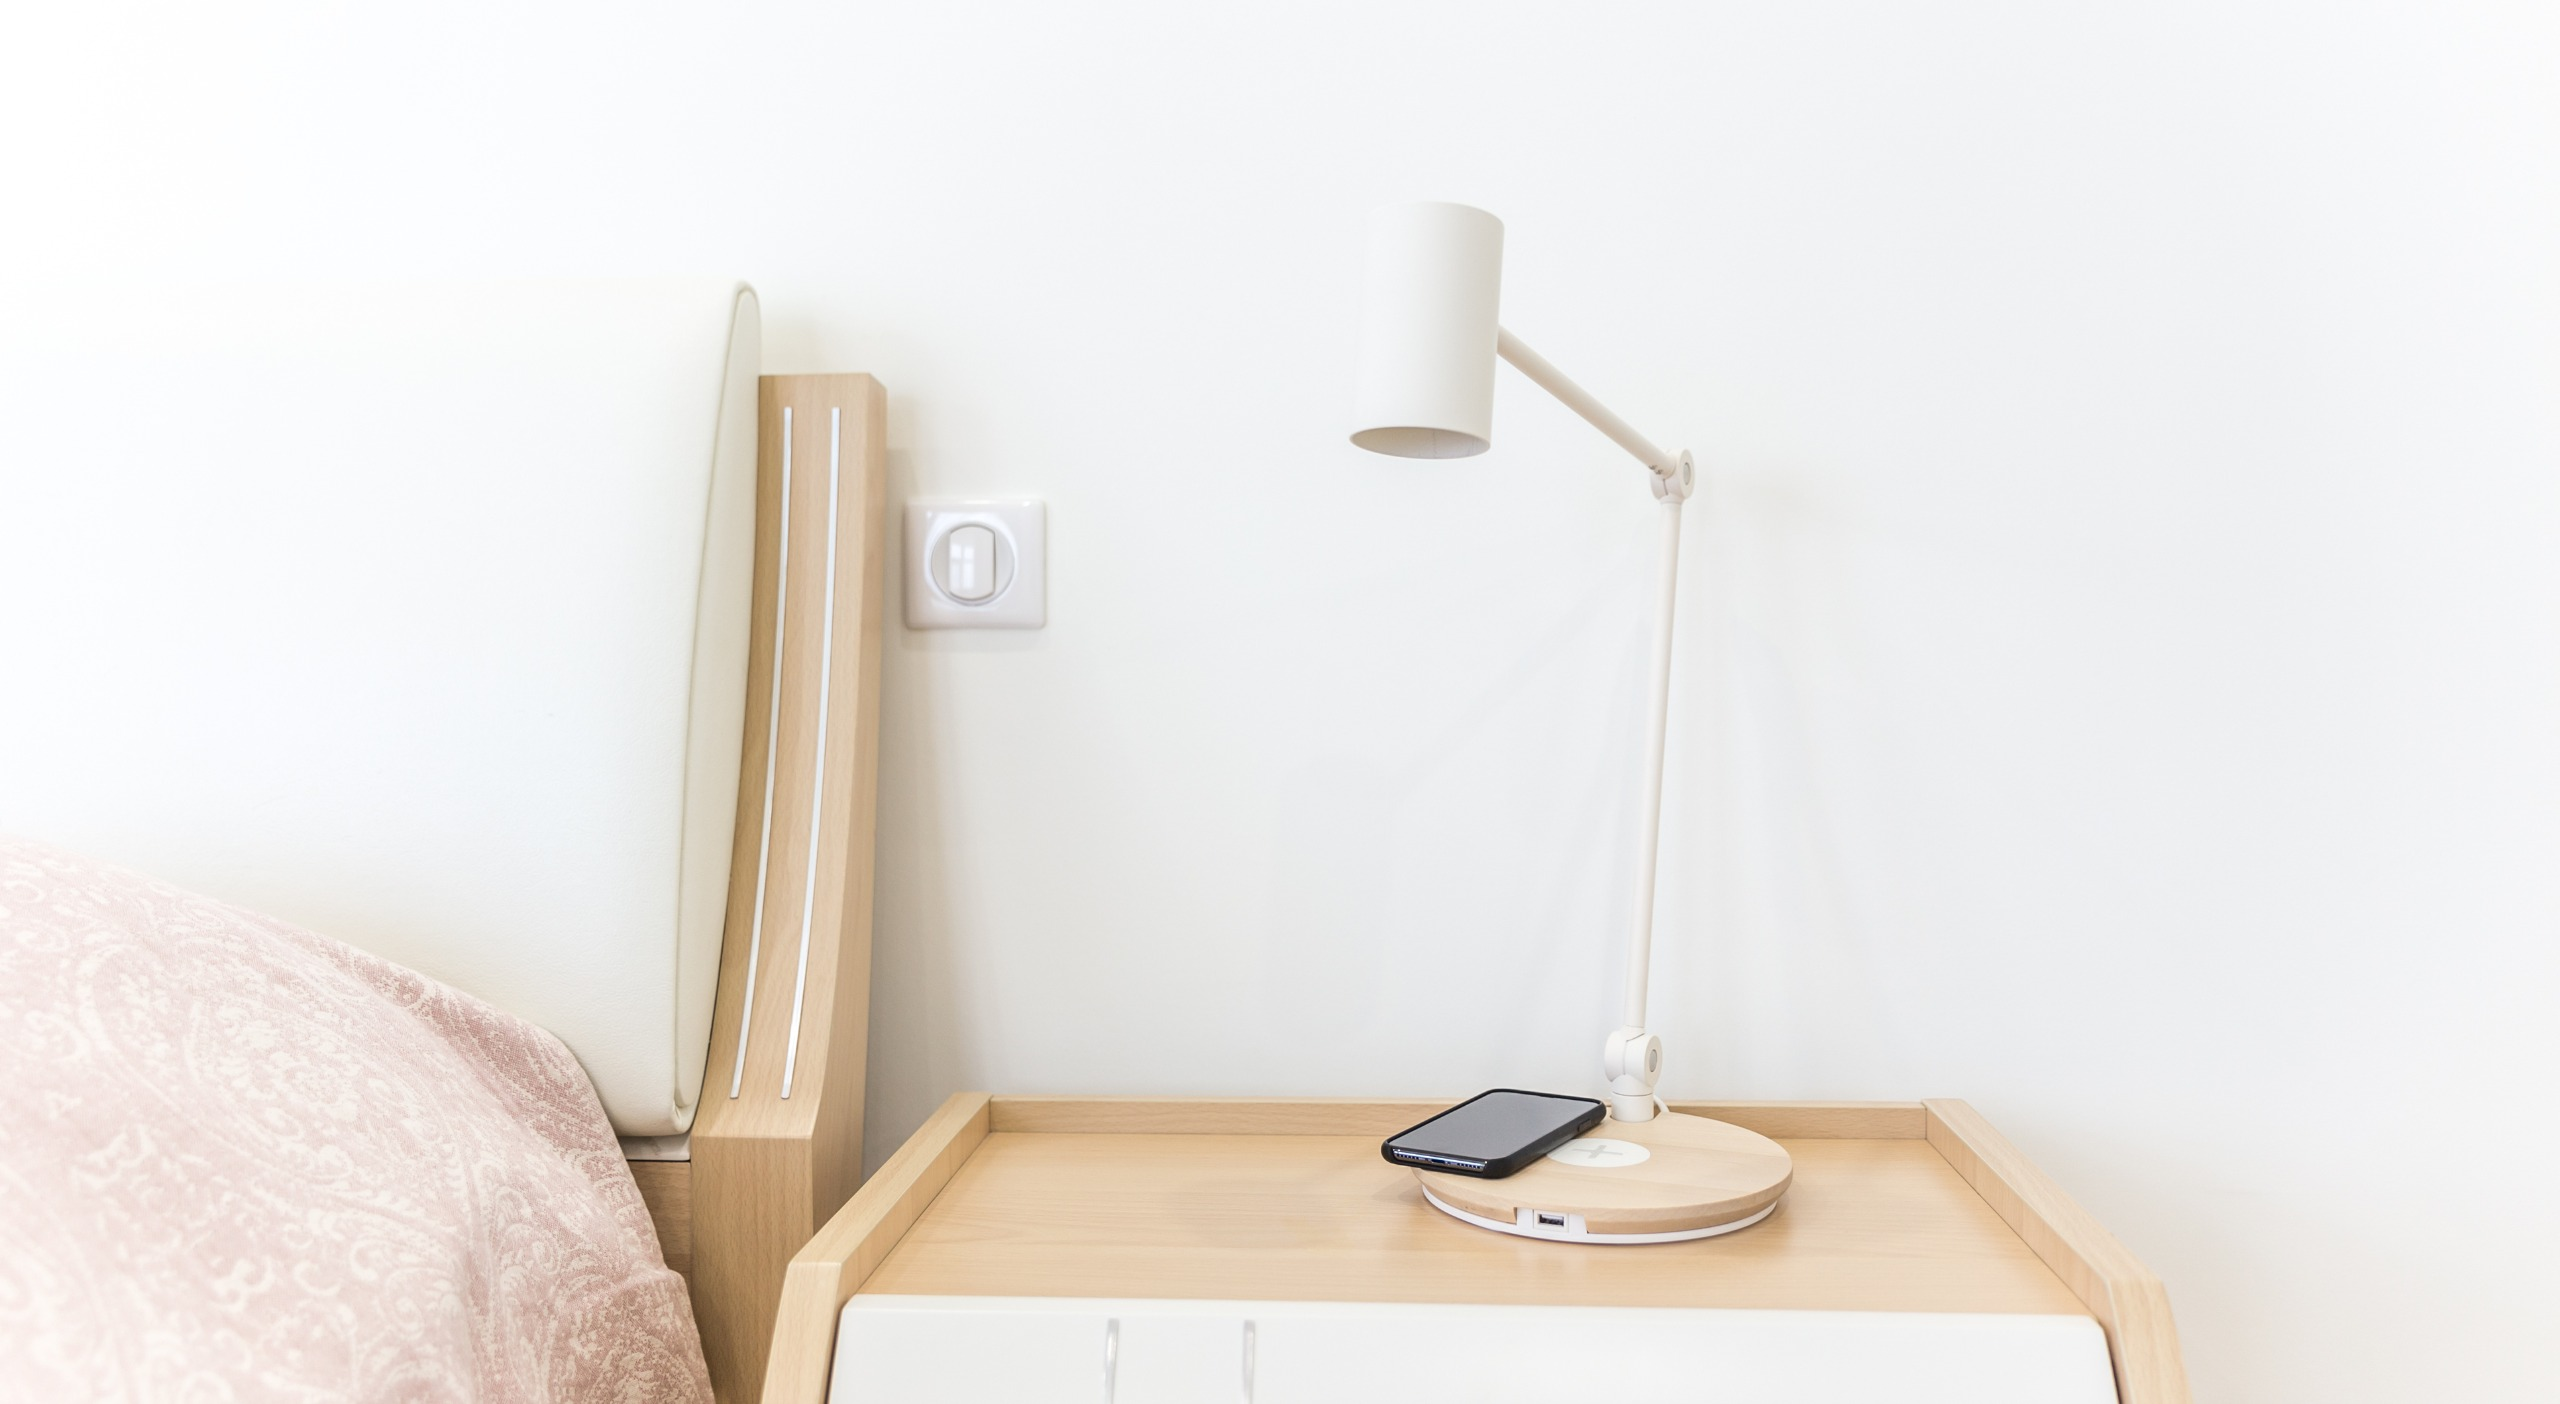 How To Make A Lamp Cordless? – Essential Guide